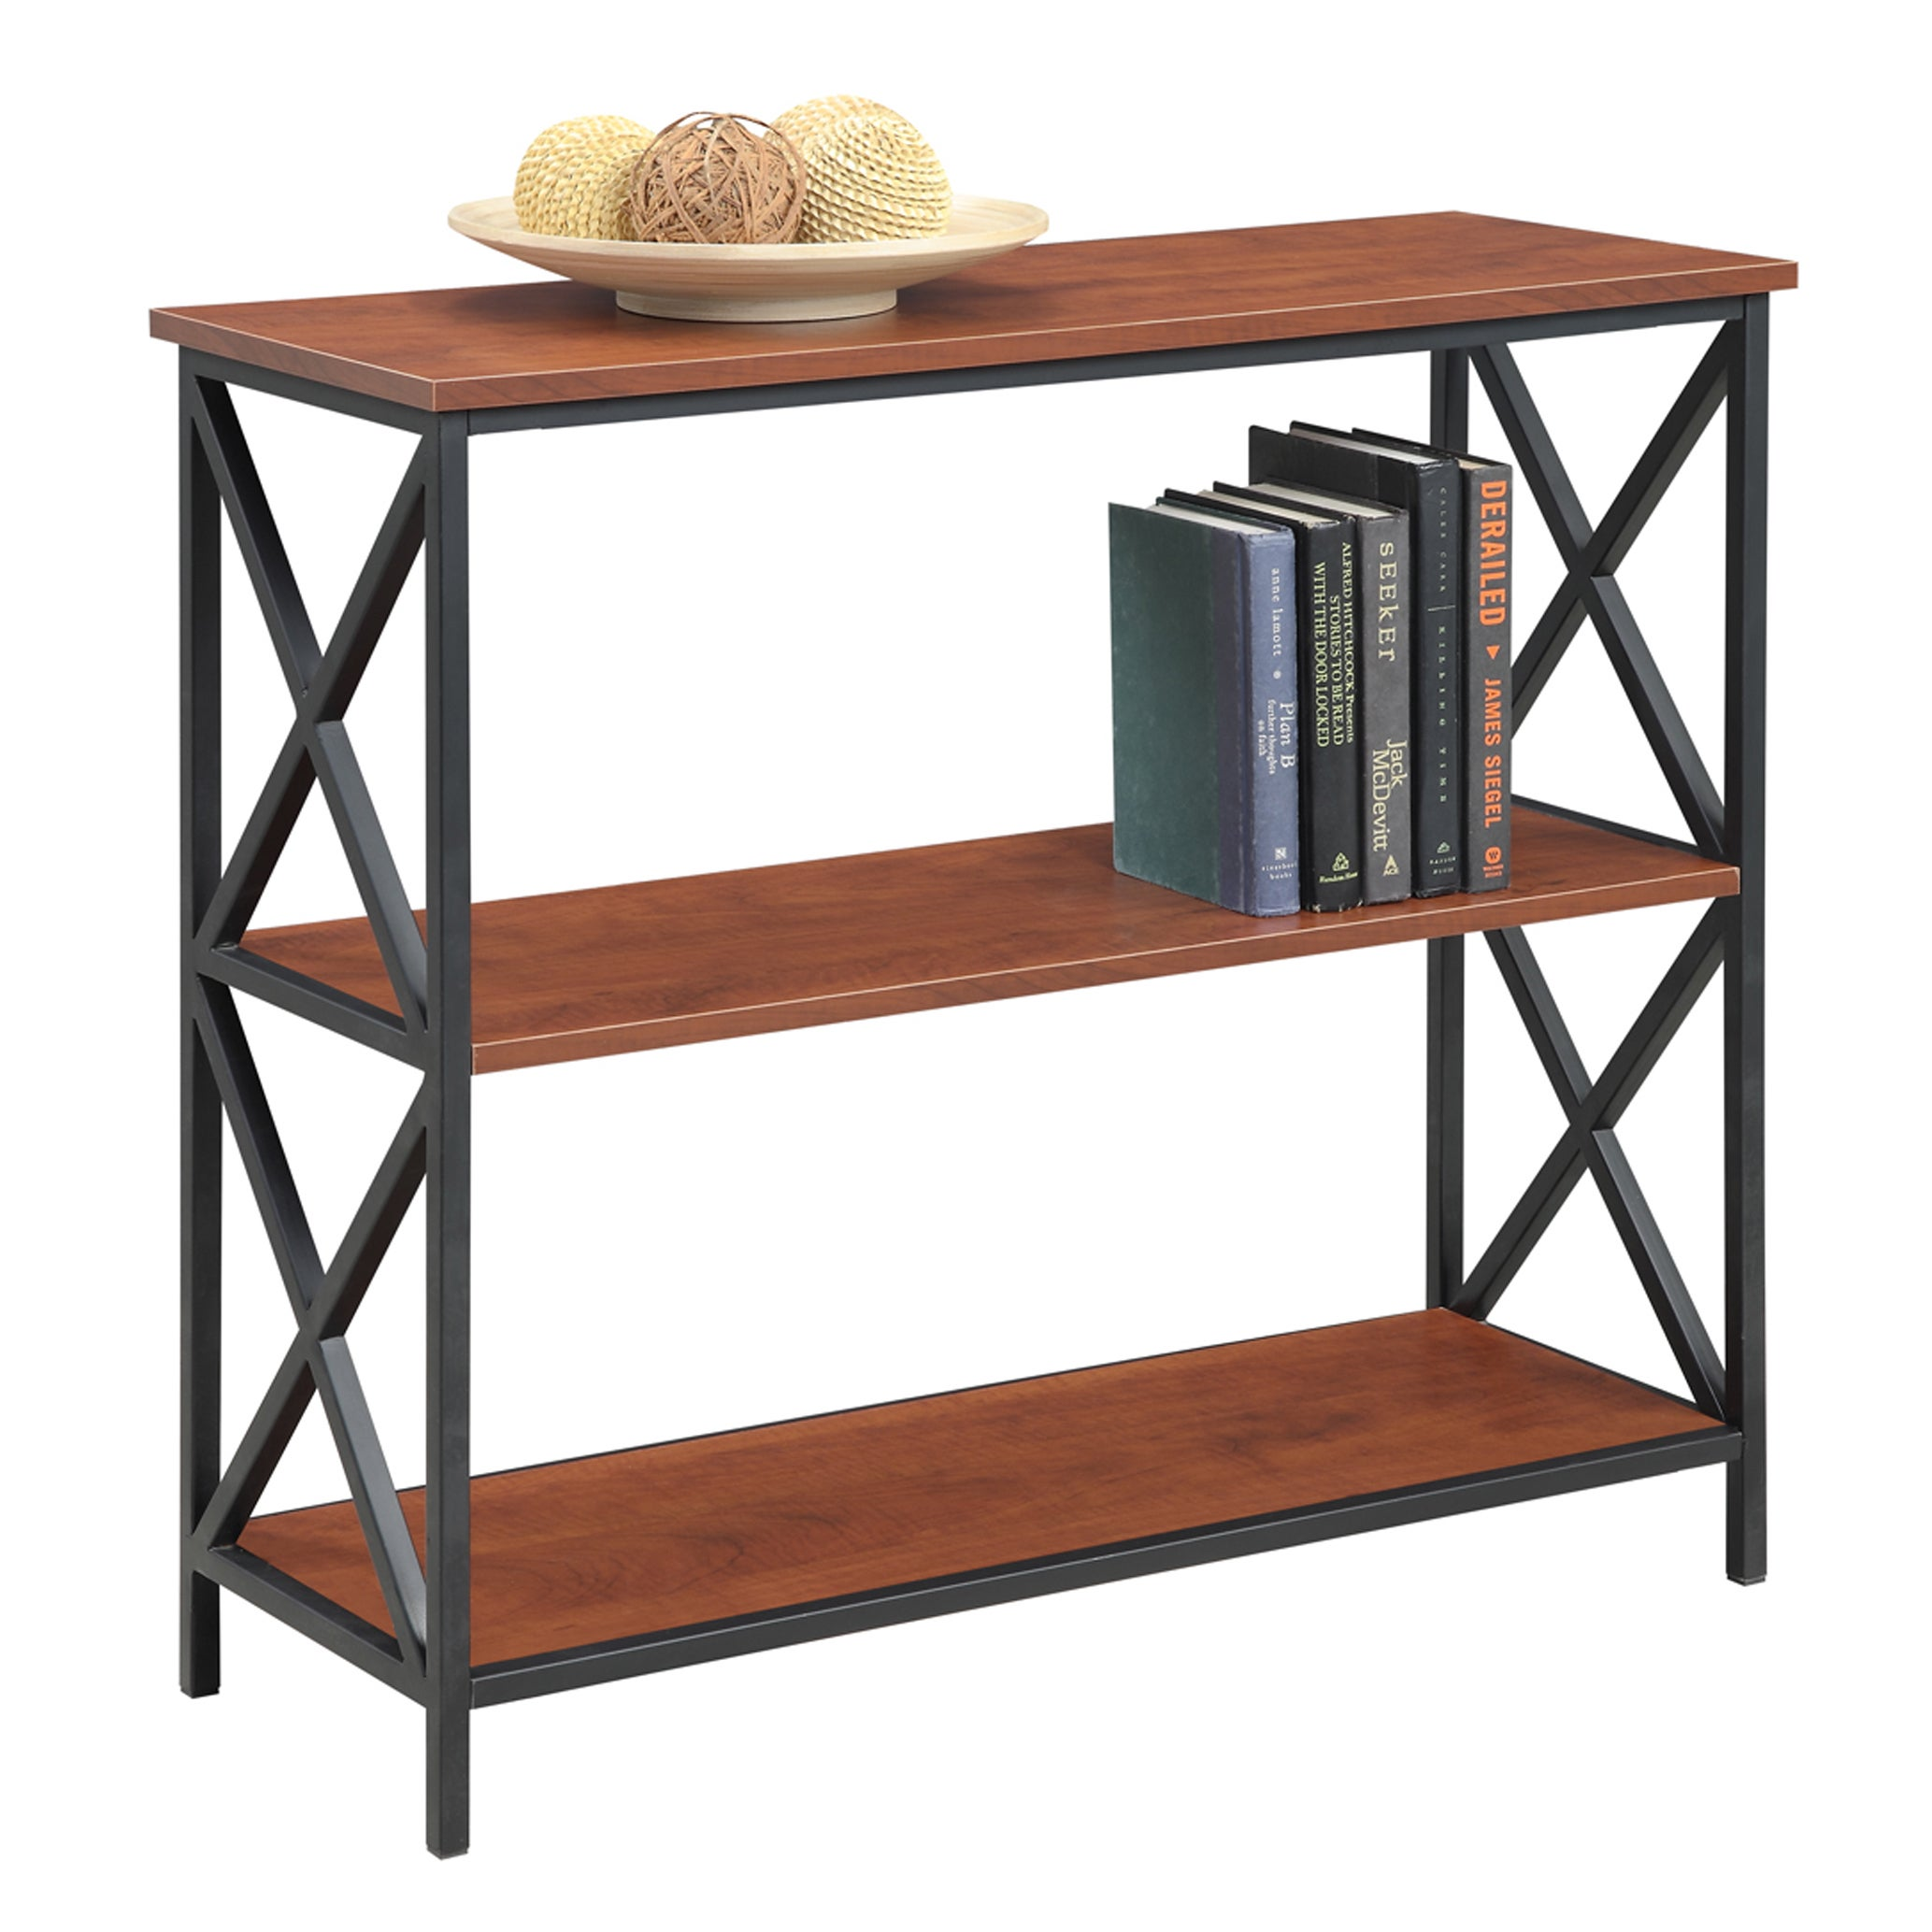 ikea tables end tabletop side bookcase and bookcases table